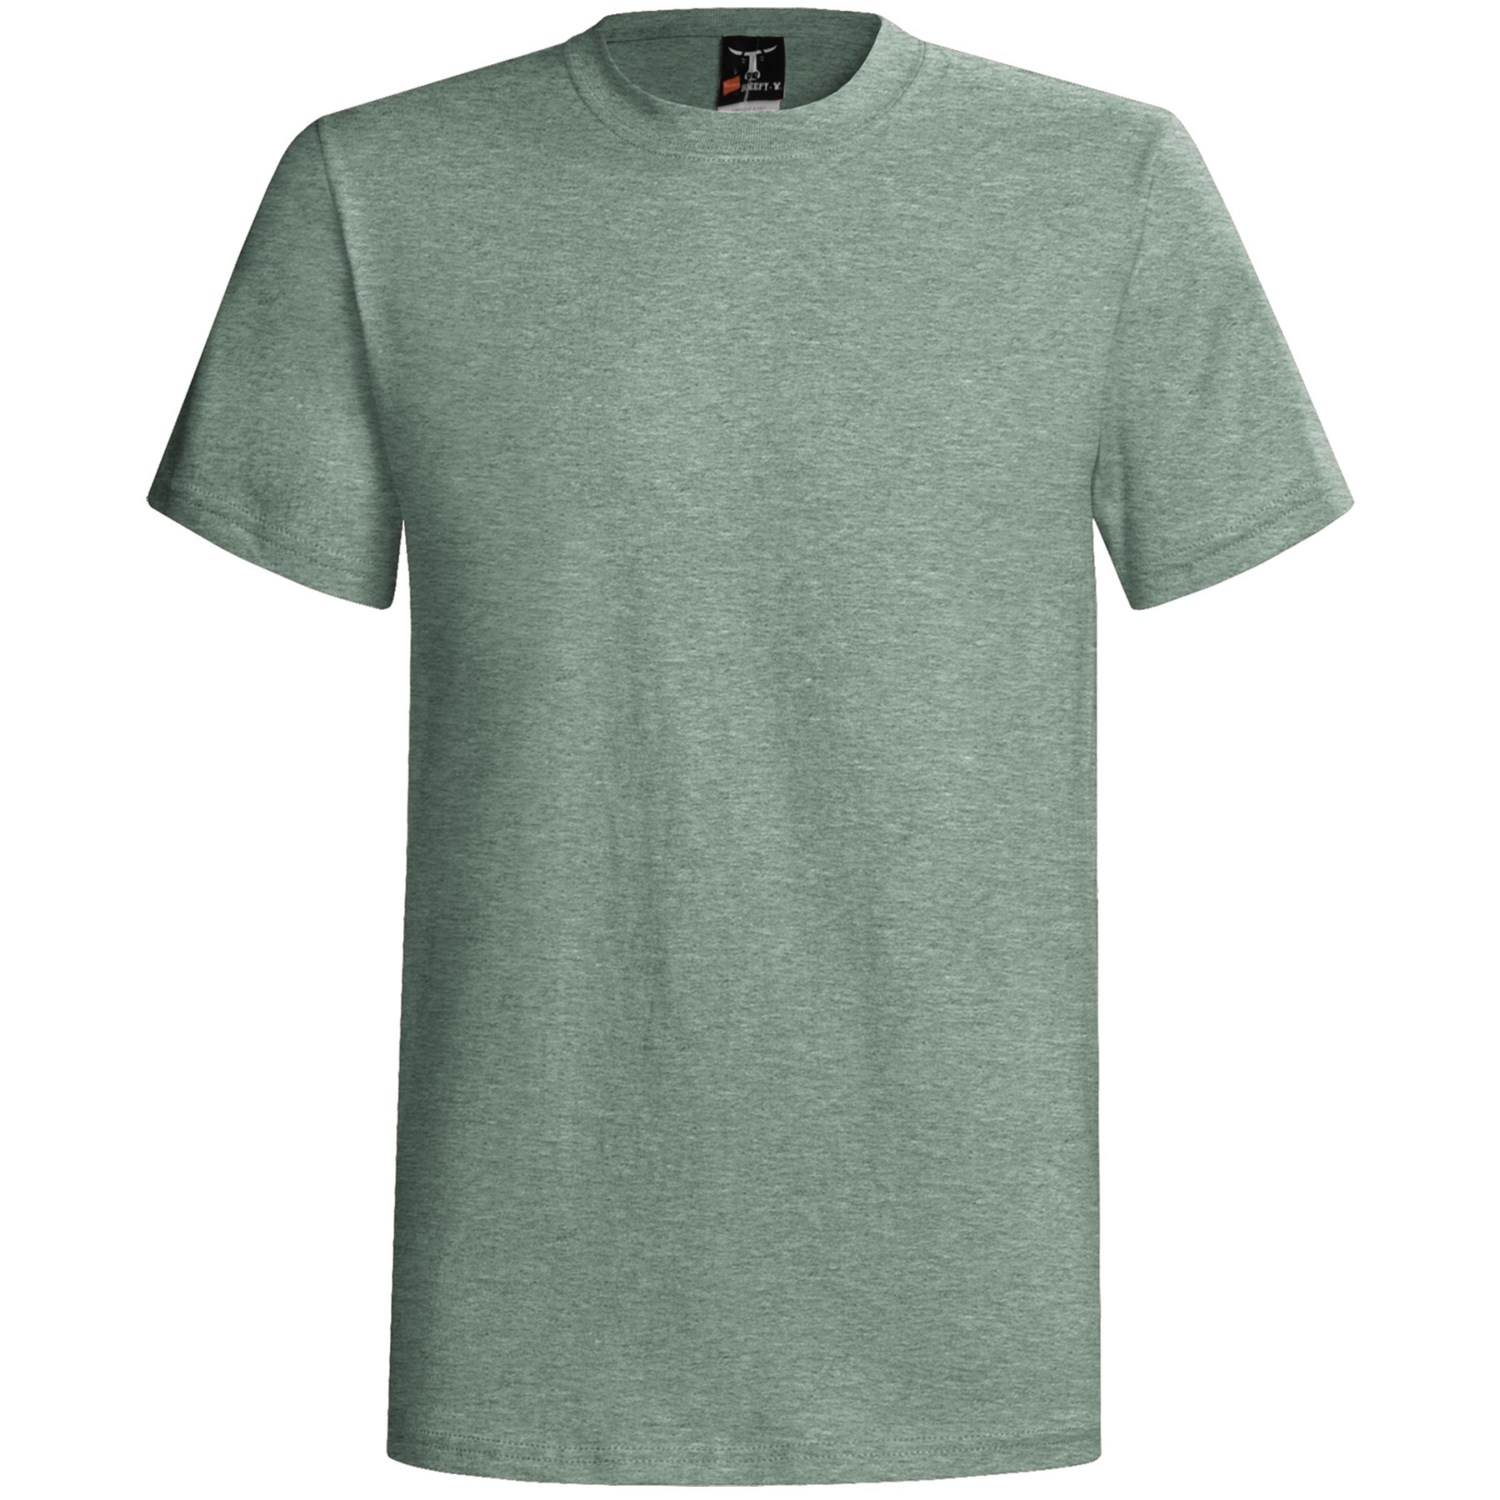 Hanes beefy t t shirt short sleeve for men and women for Hanes beefy t custom shirts